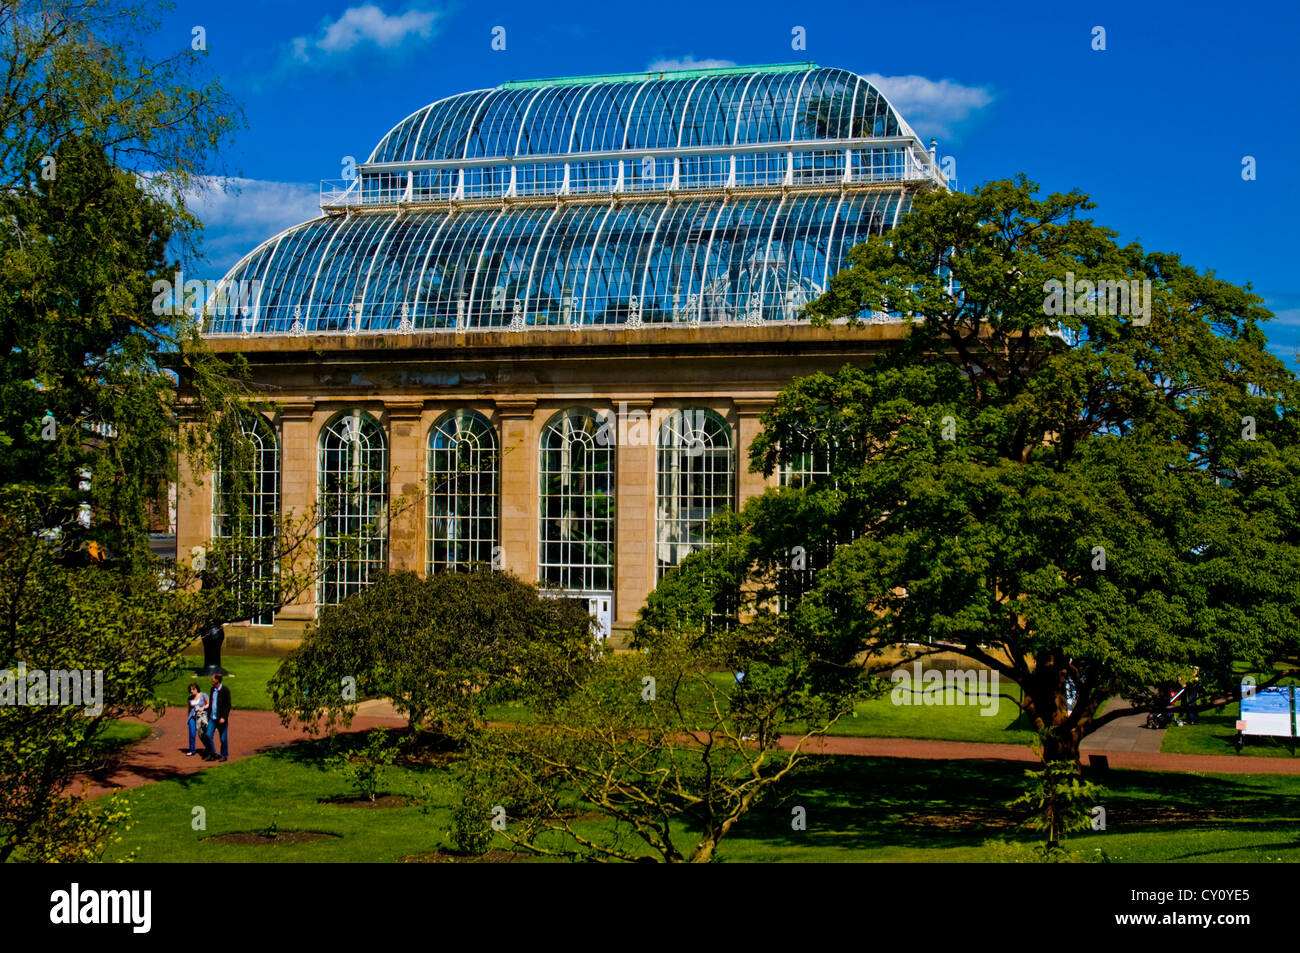 Temperate palm house at Royal Botanic Gardens Edinburgh - Stock Image